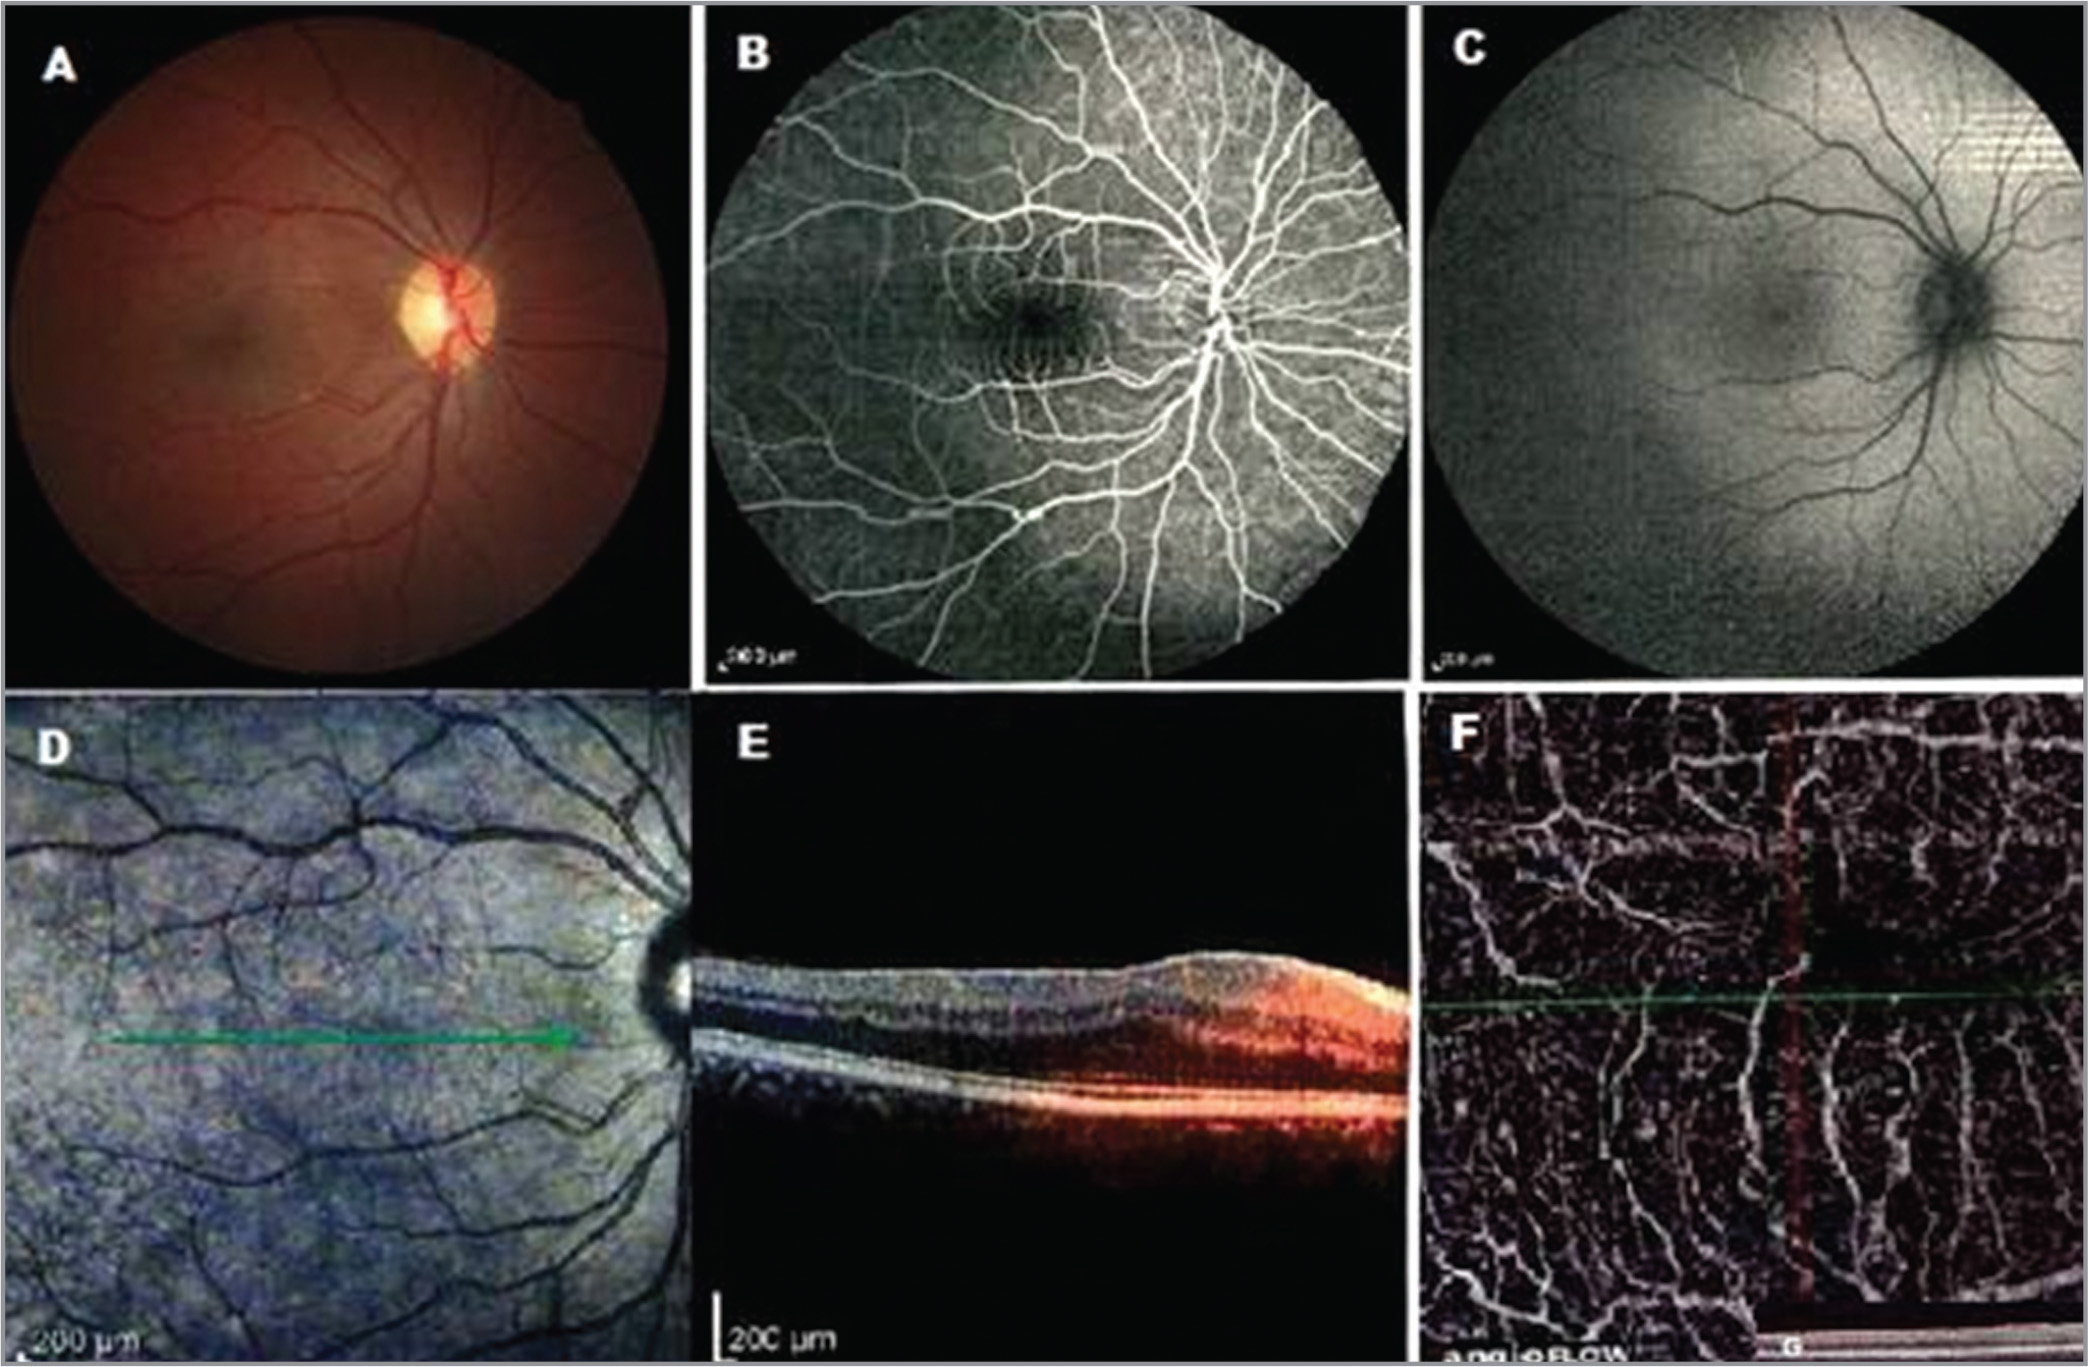 Multimodal imaging of a 22-year-old man with unilateral foveal hypoplasia. (A) Fundus photograph of the right eye showed no foveal reflex. (B) Fundus fluorescein angiography showed lack of a foveal avascular zone (FAZ). (C, D) Fundus autofluorescence and infrared imaging with equivocal findings. (E) Spectral-domain optical coherence tomography (SD-OCT) reveals a shallow foveal pit and continuity of inner retinal layer. (F) OCT angiography with an extremely small FAZ in the superficial capillary plexus.